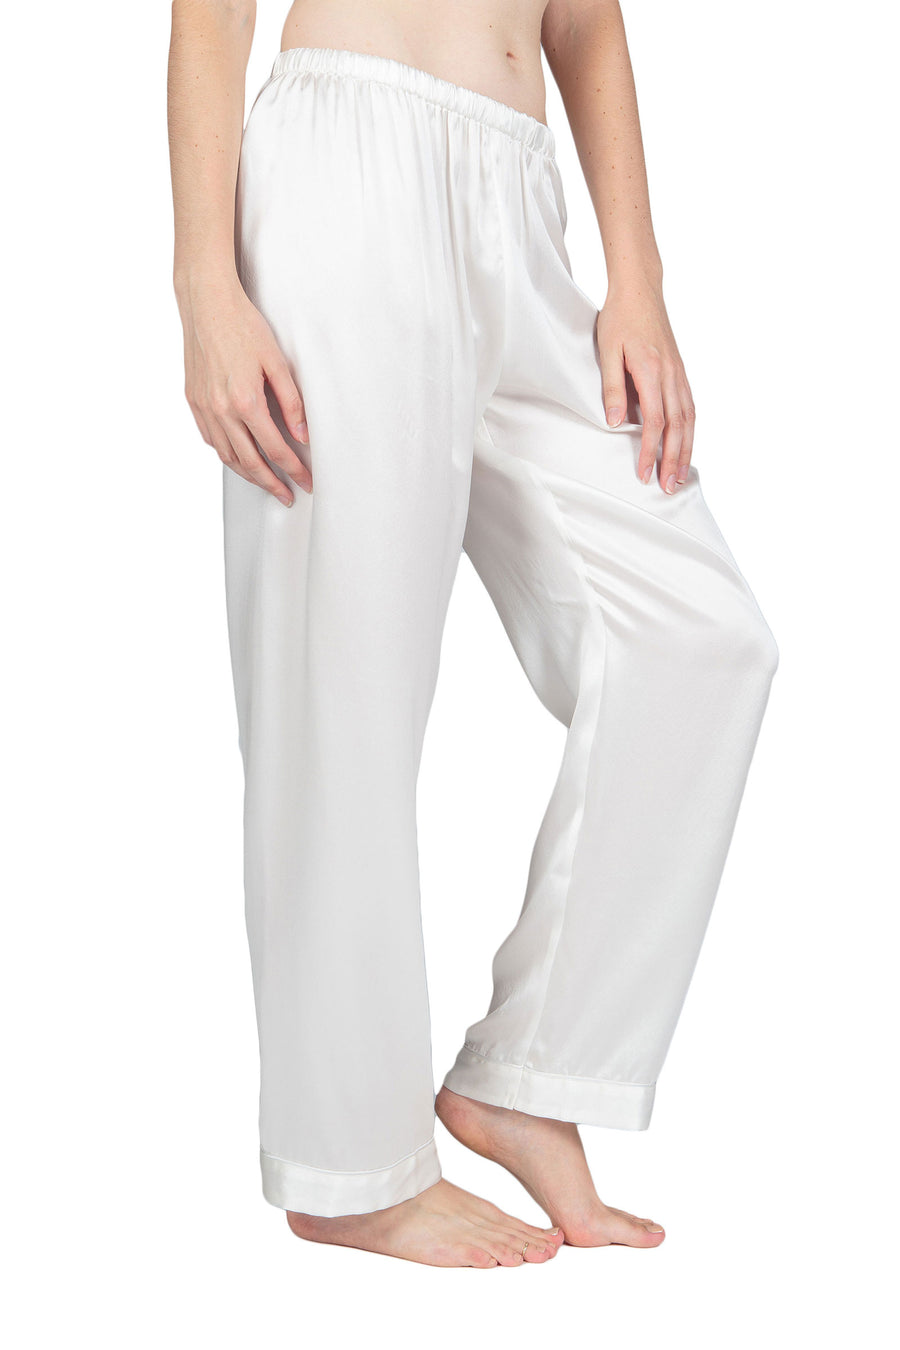 Morning Moon - Women's Silk PJ Pants